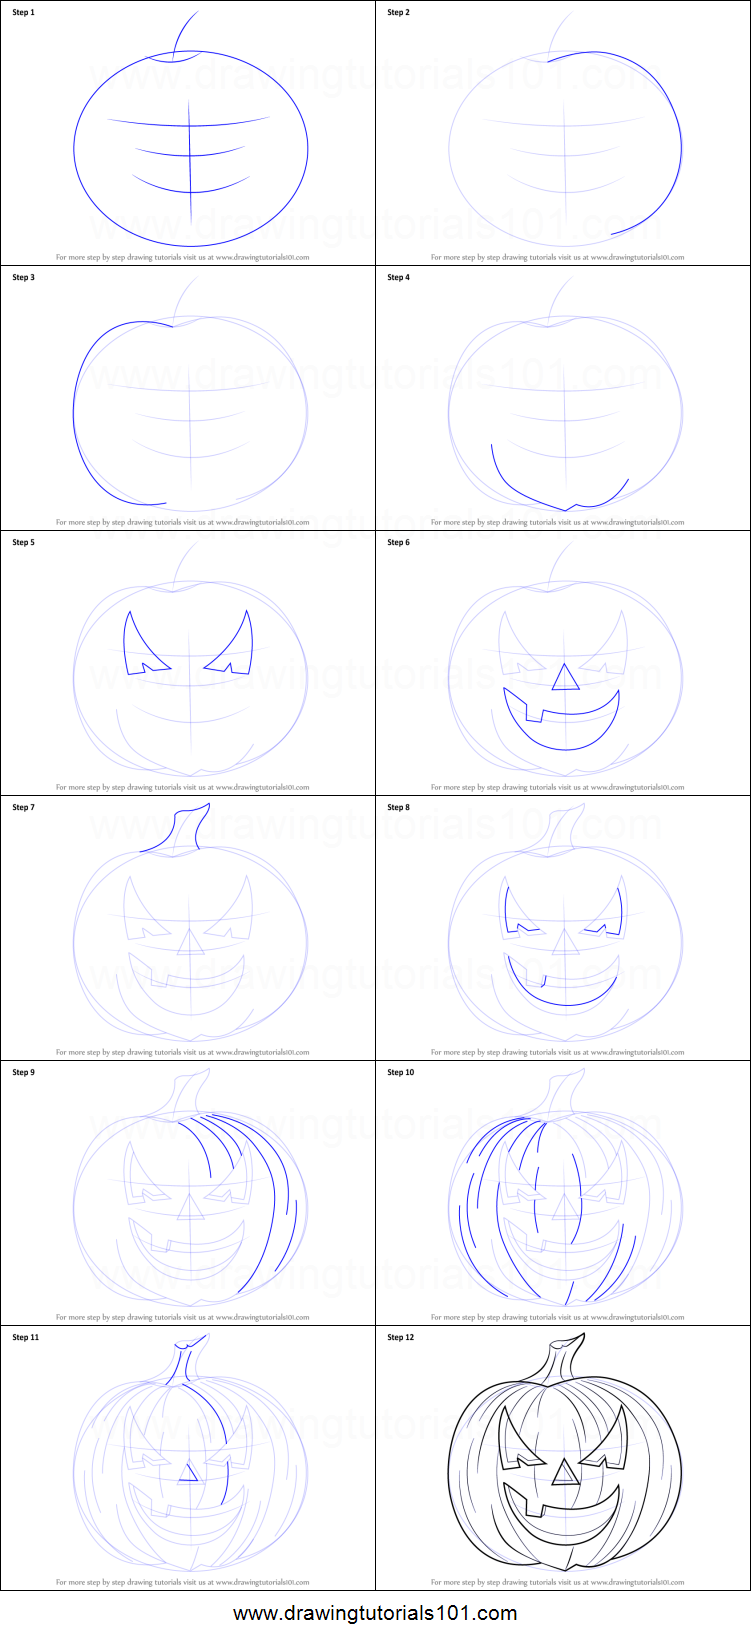 how to draw halloween pumpkin printable step by step drawing sheet